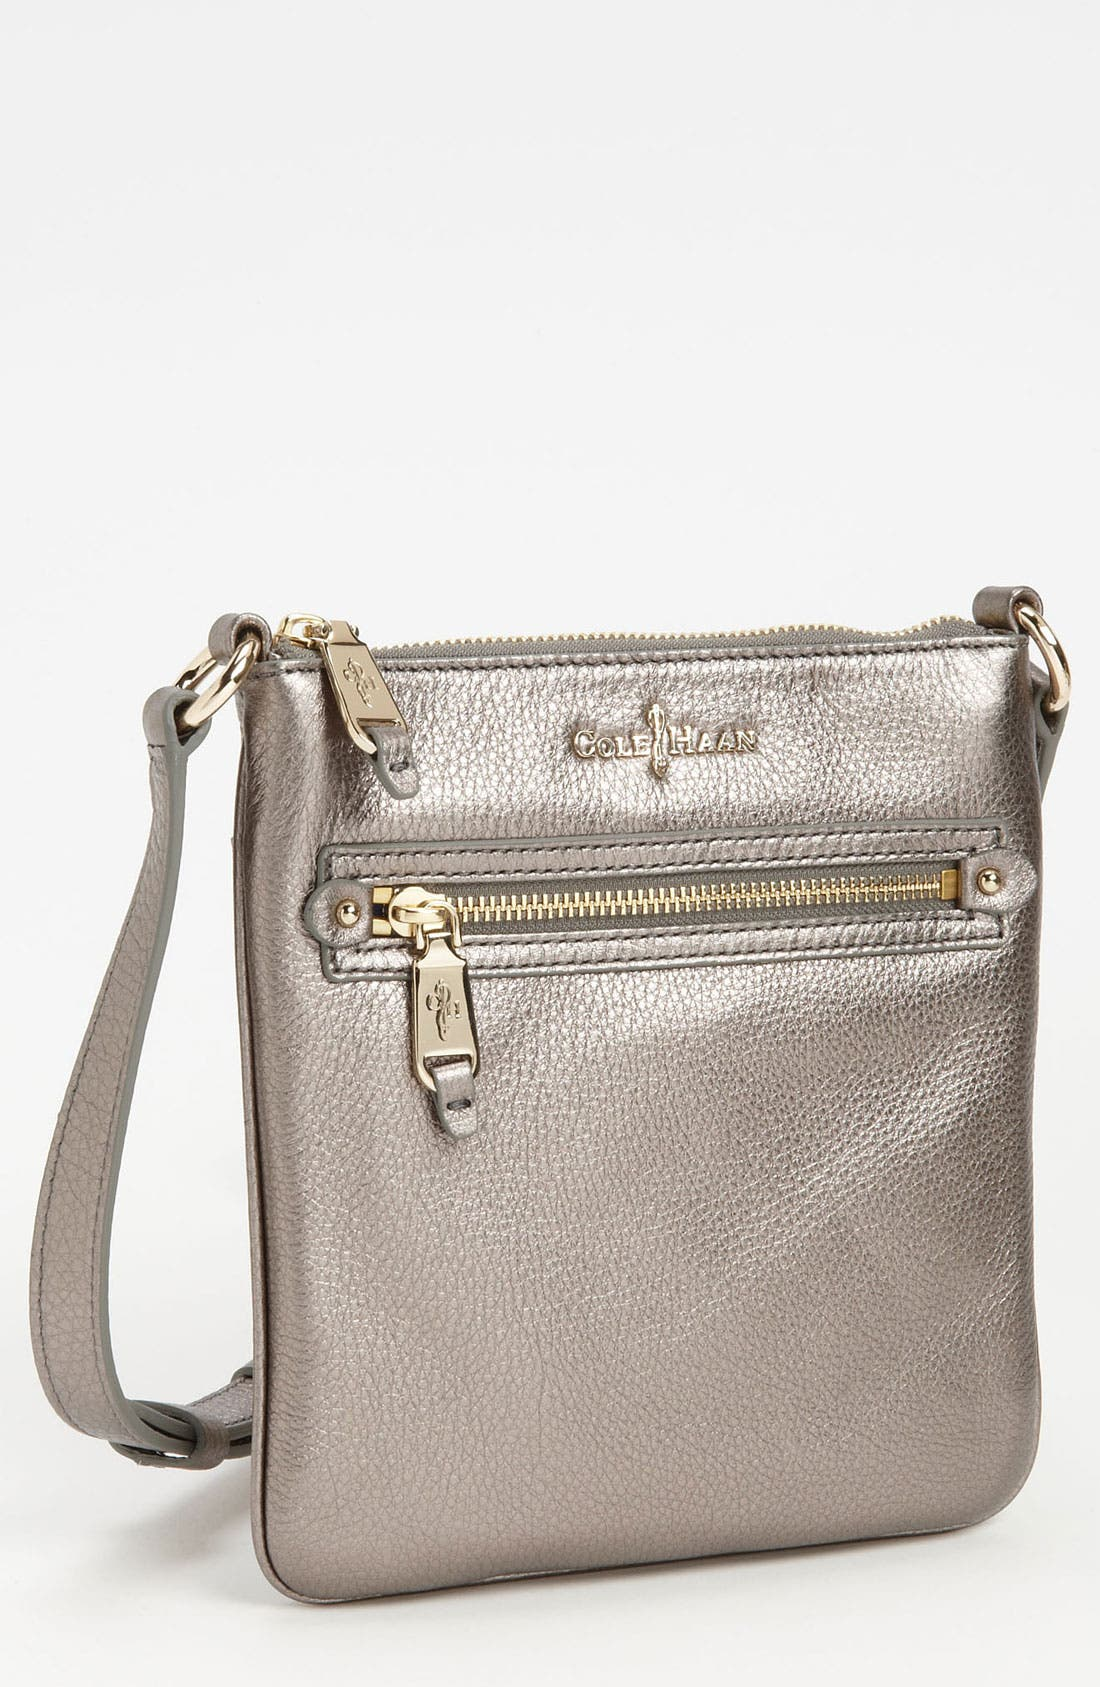 Alternate Image 1 Selected - Cole Haan 'Linley - Swing Pack' Crossbody Bag